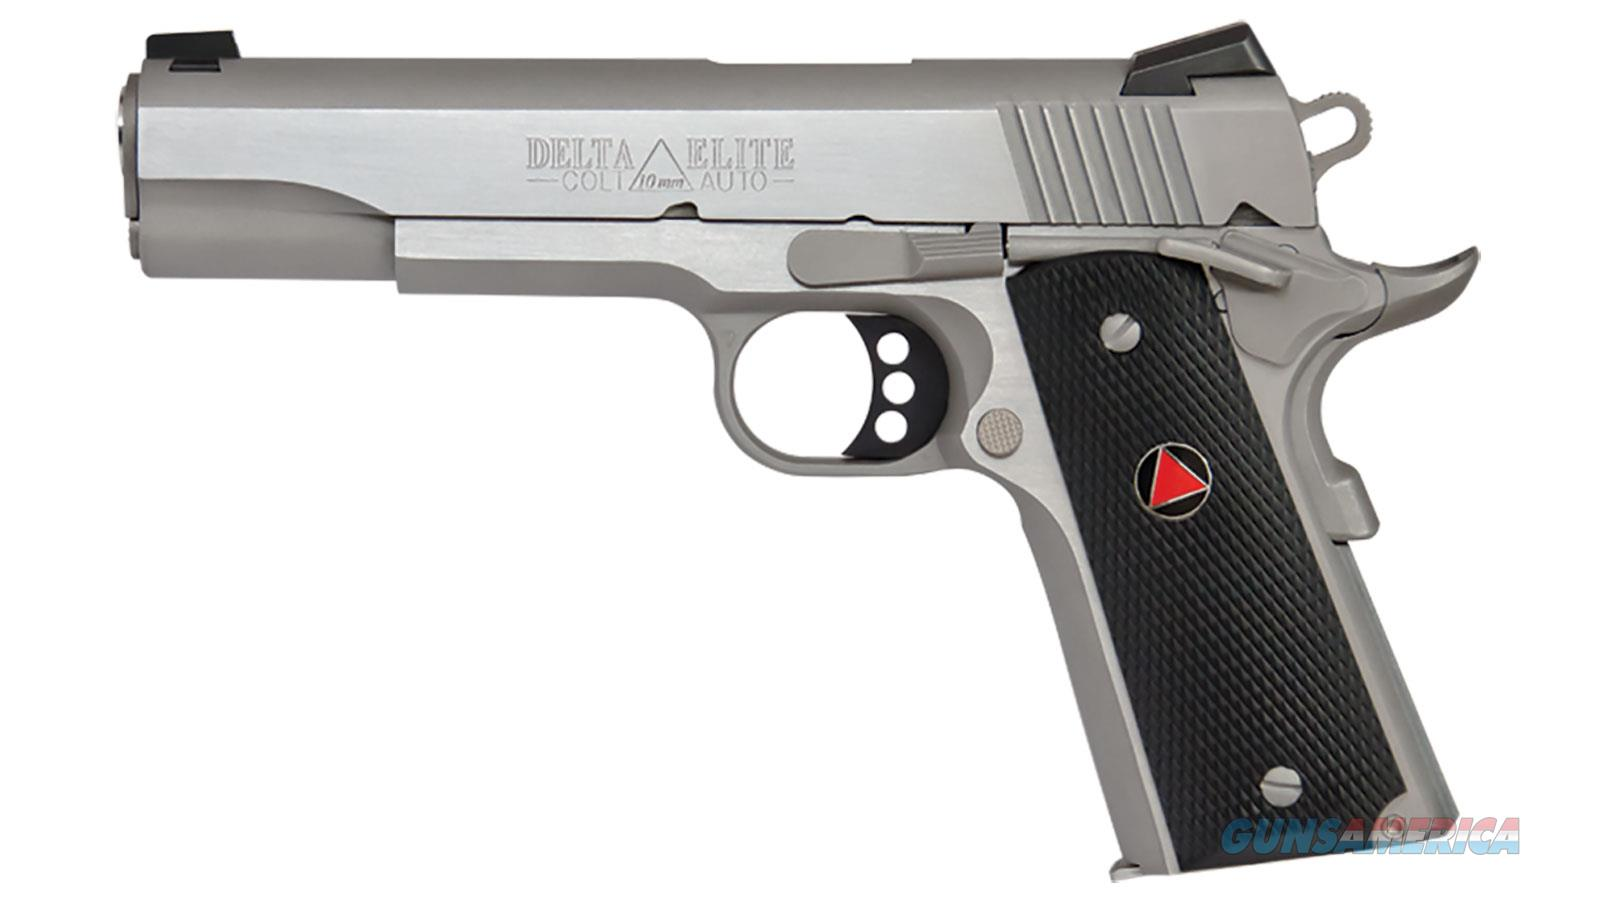 "COLT MFG O2020XE 1911 DELTA ELITE SINGLE 10MM 5.0"" 8+1 GRIP STAINLESS O2020XE  Guns > Pistols > C Misc Pistols"